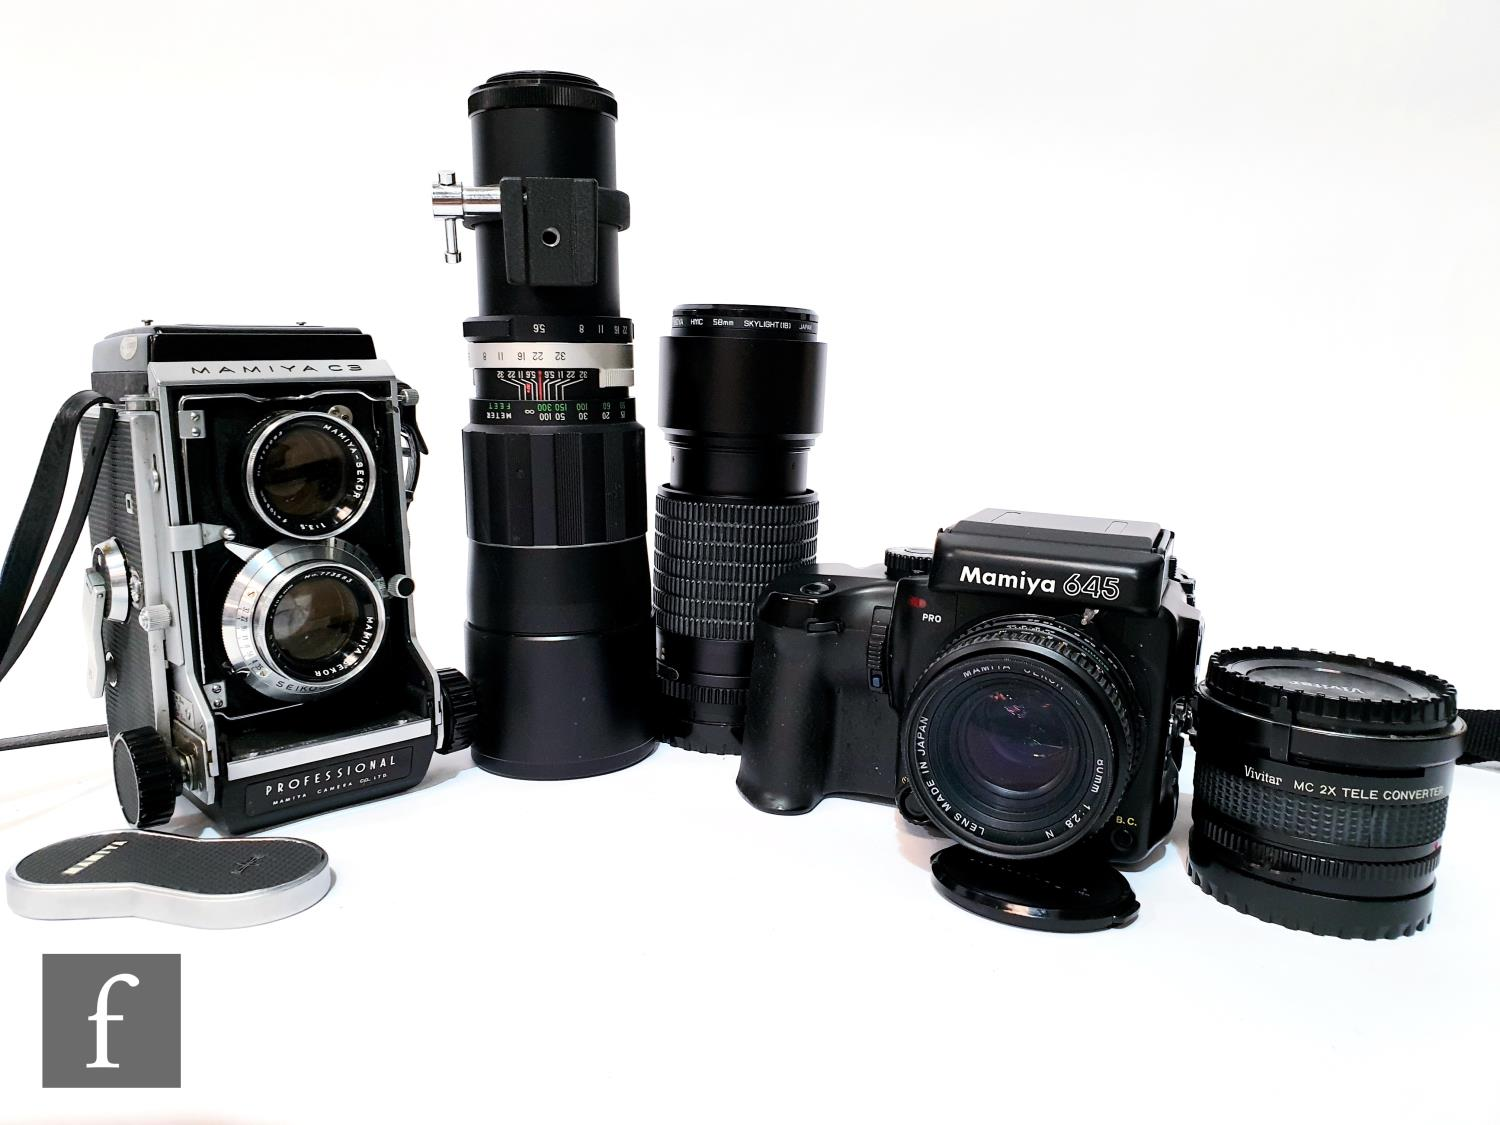 A Mamiya C3 TLR camera, a Mamiya 645 with four interchangeable lenses including a Solligor telephoto